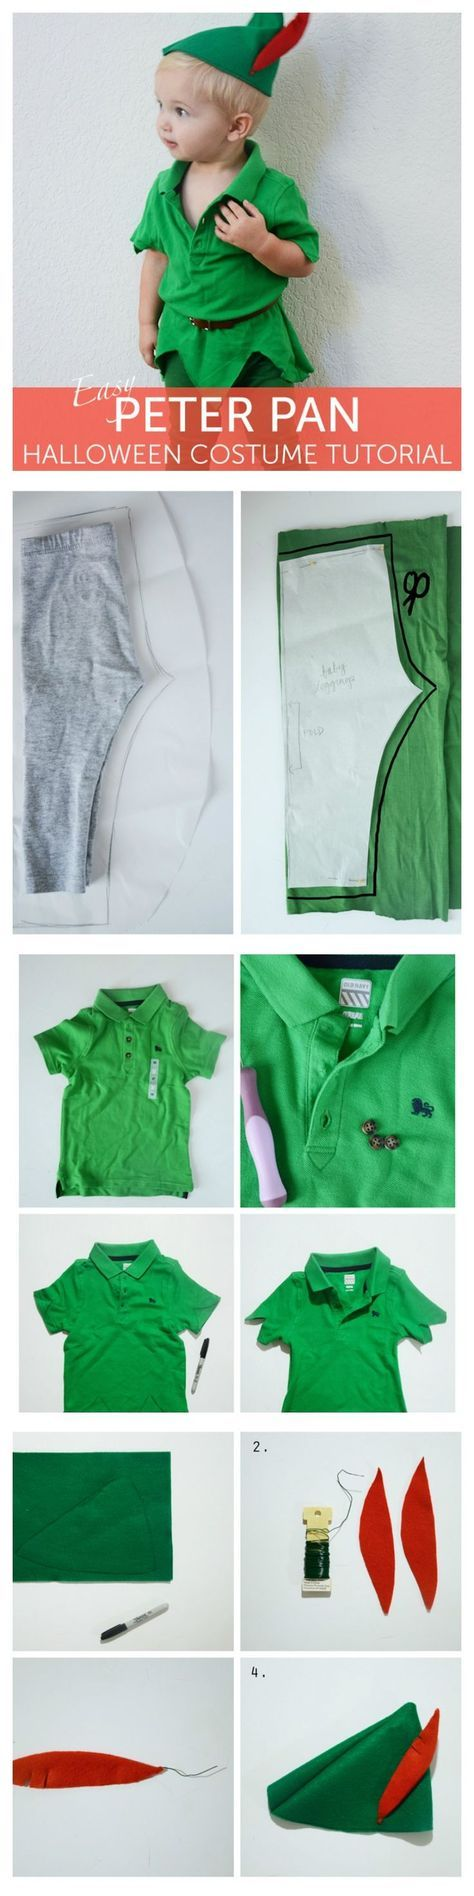 All you need is faith, trust, and a little pixie dust to make this Peter Pan costume!